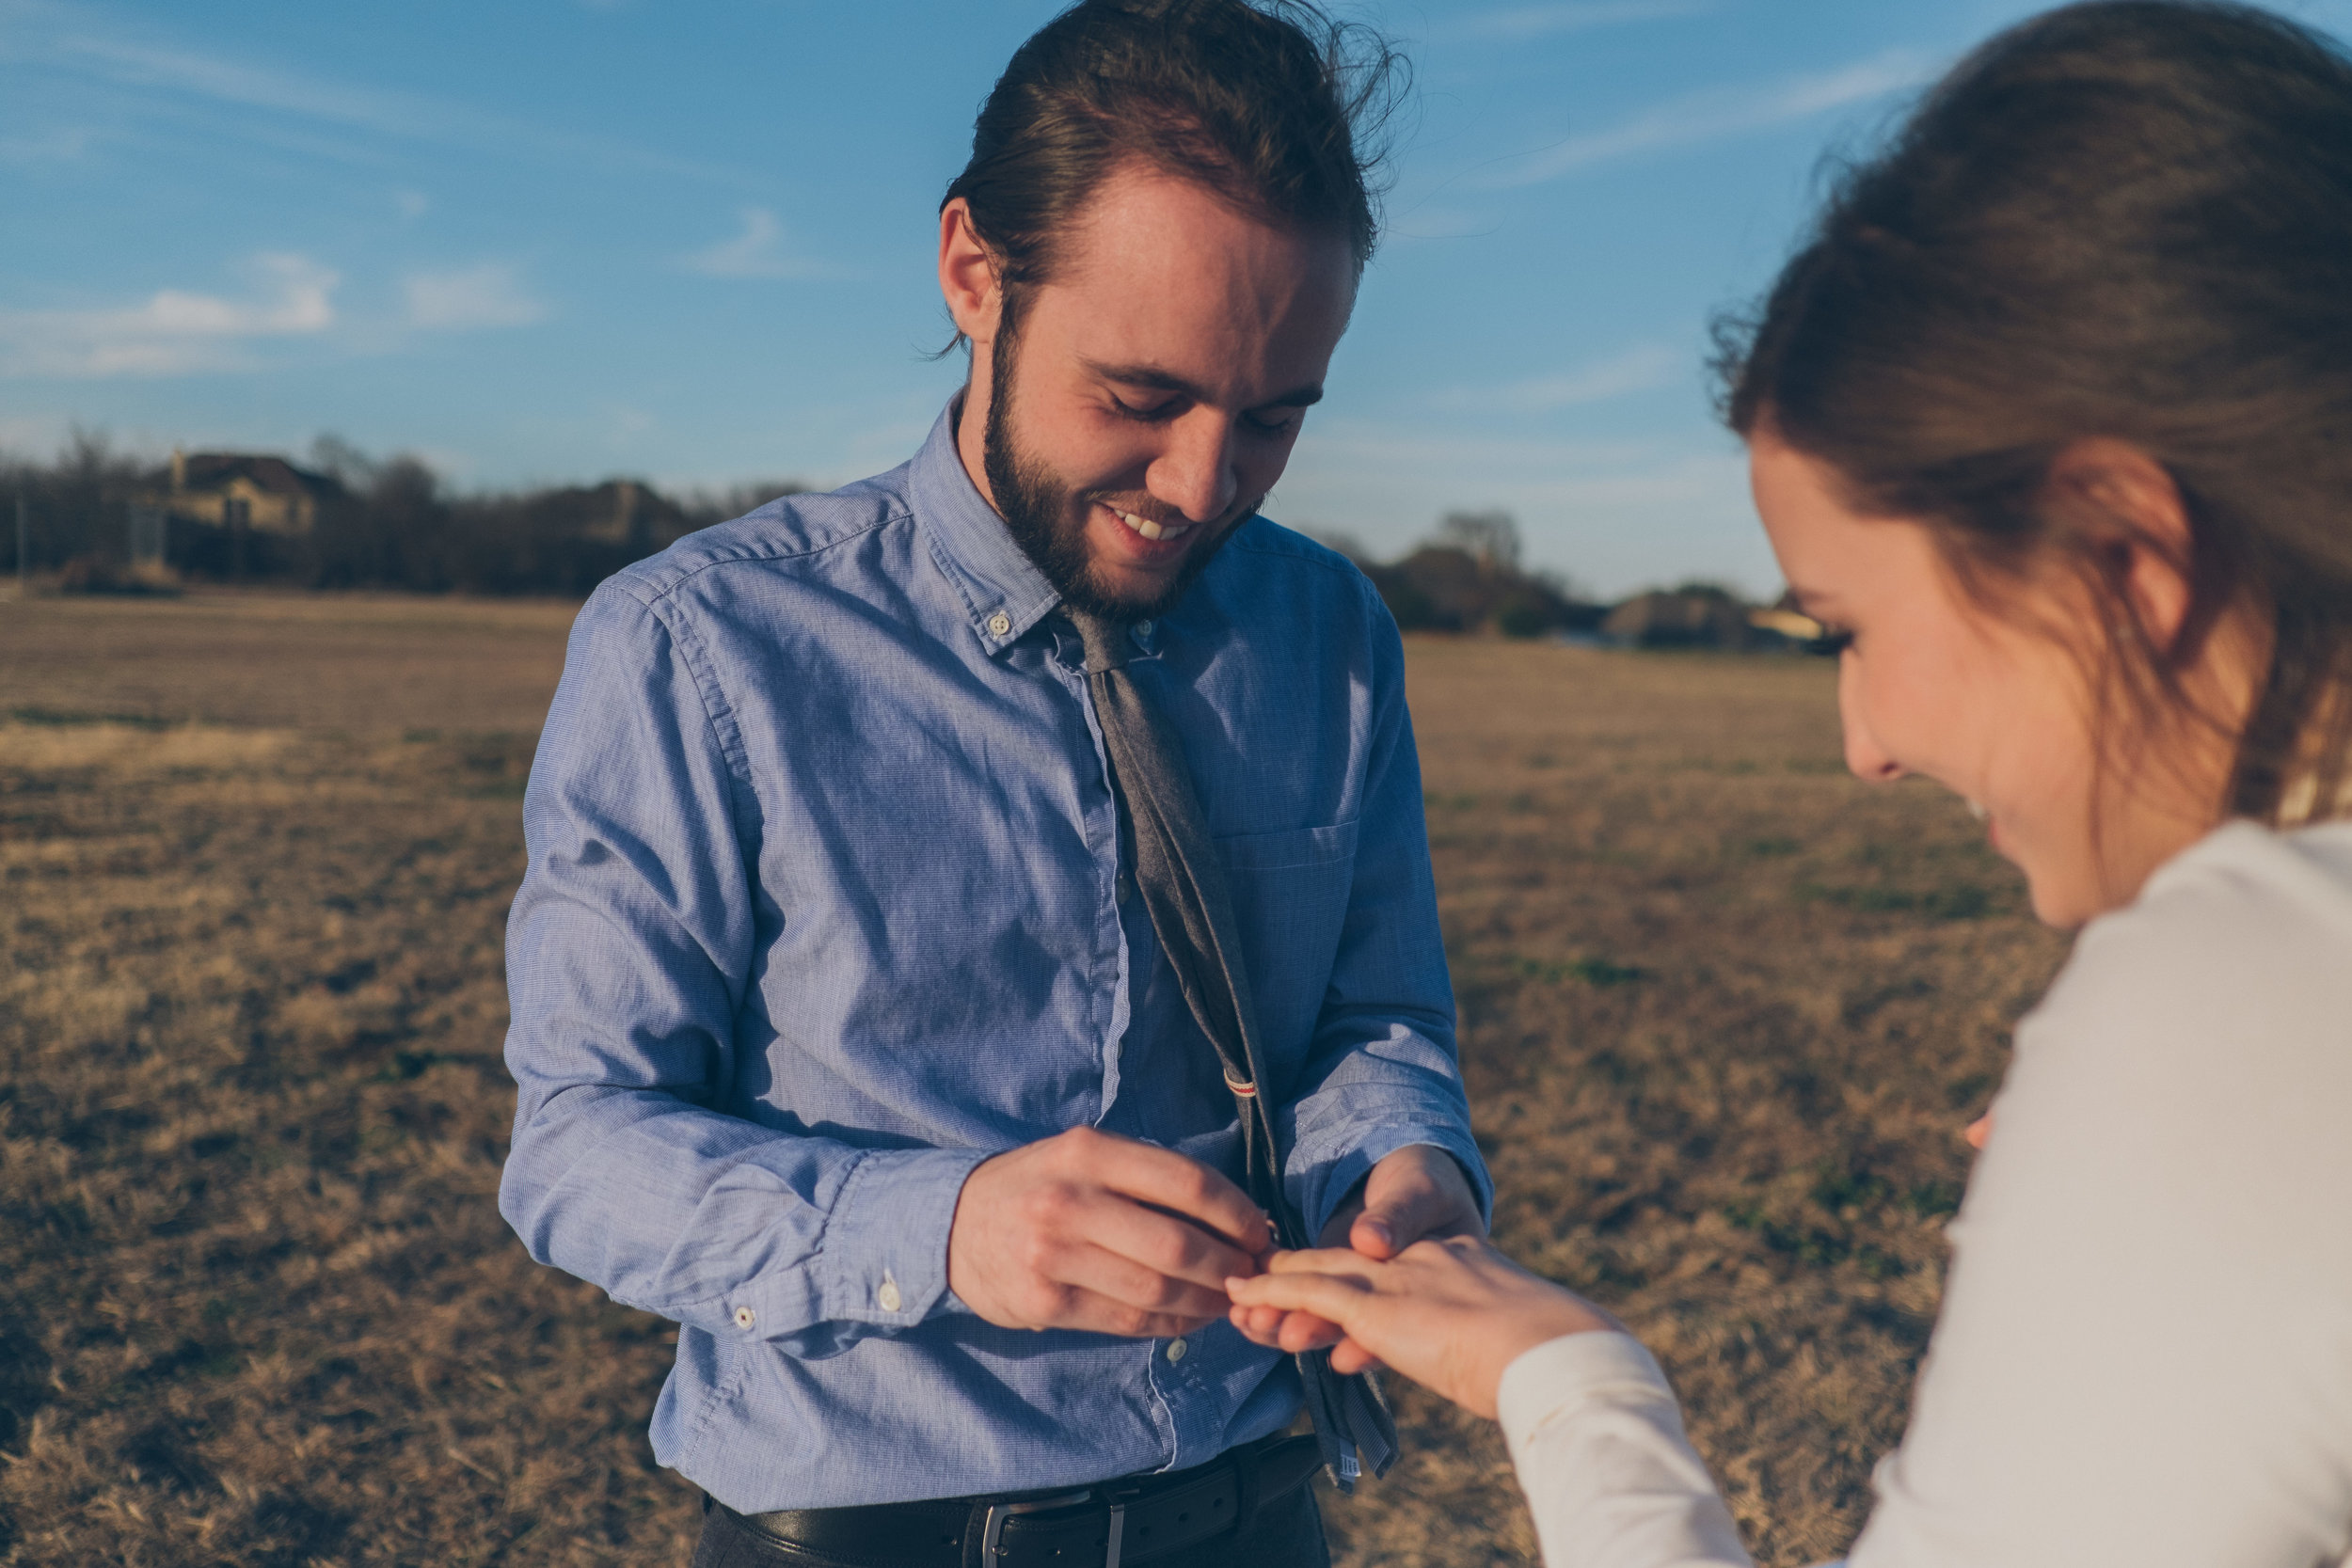 Man in blue shirt placing engagement ring on hand of woman